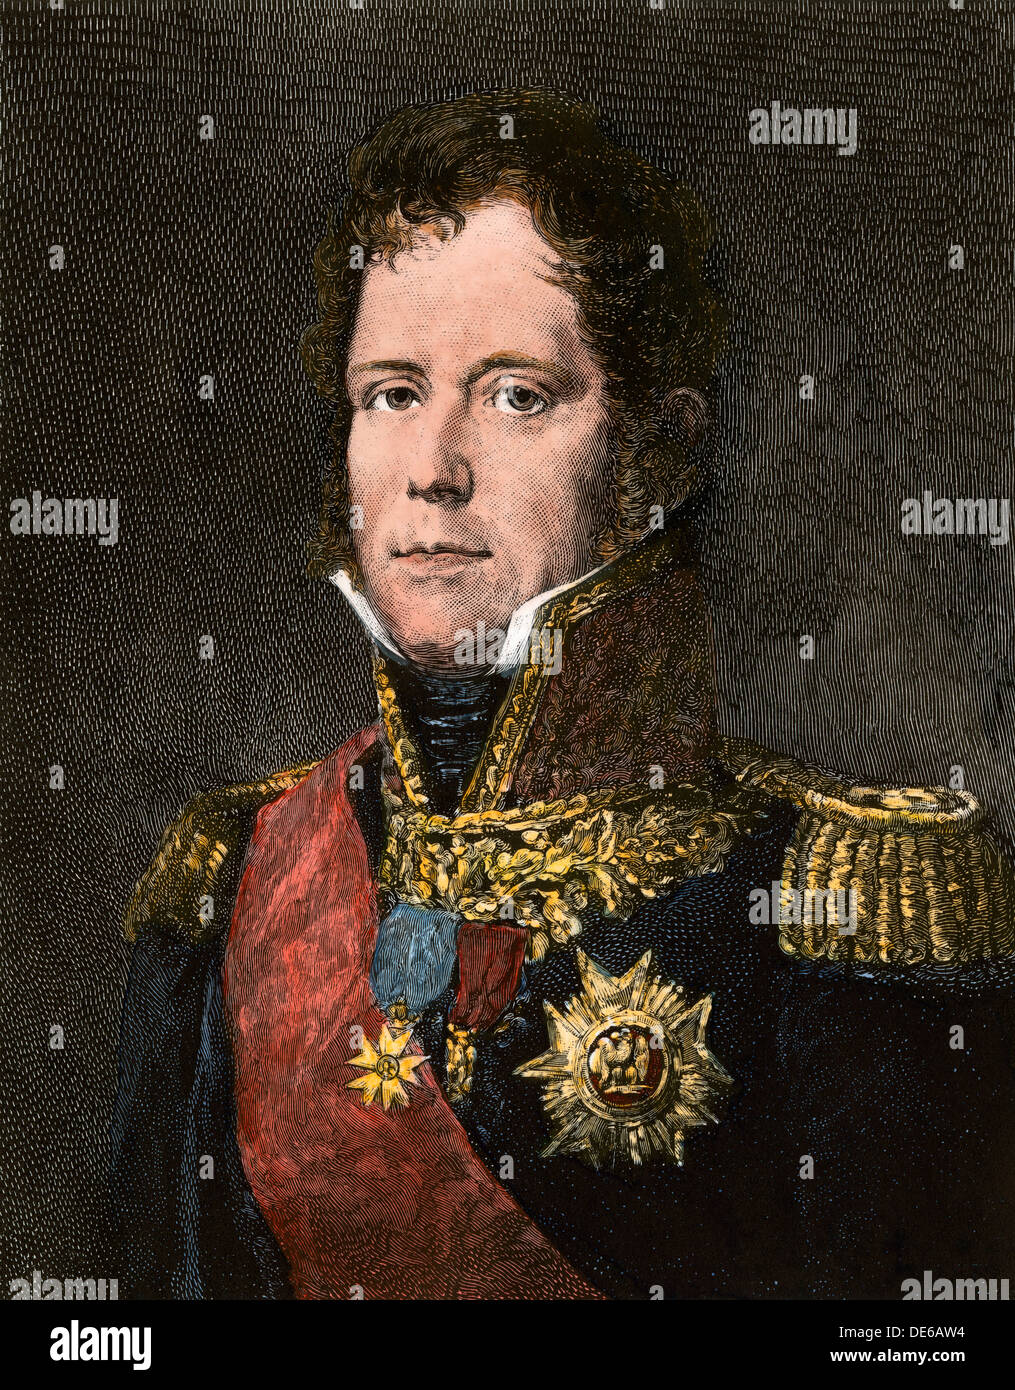 Marshal Michel Ney, commander of Napoleon's Old Guard at Waterloo. Hand-colored woodcut - Stock Image